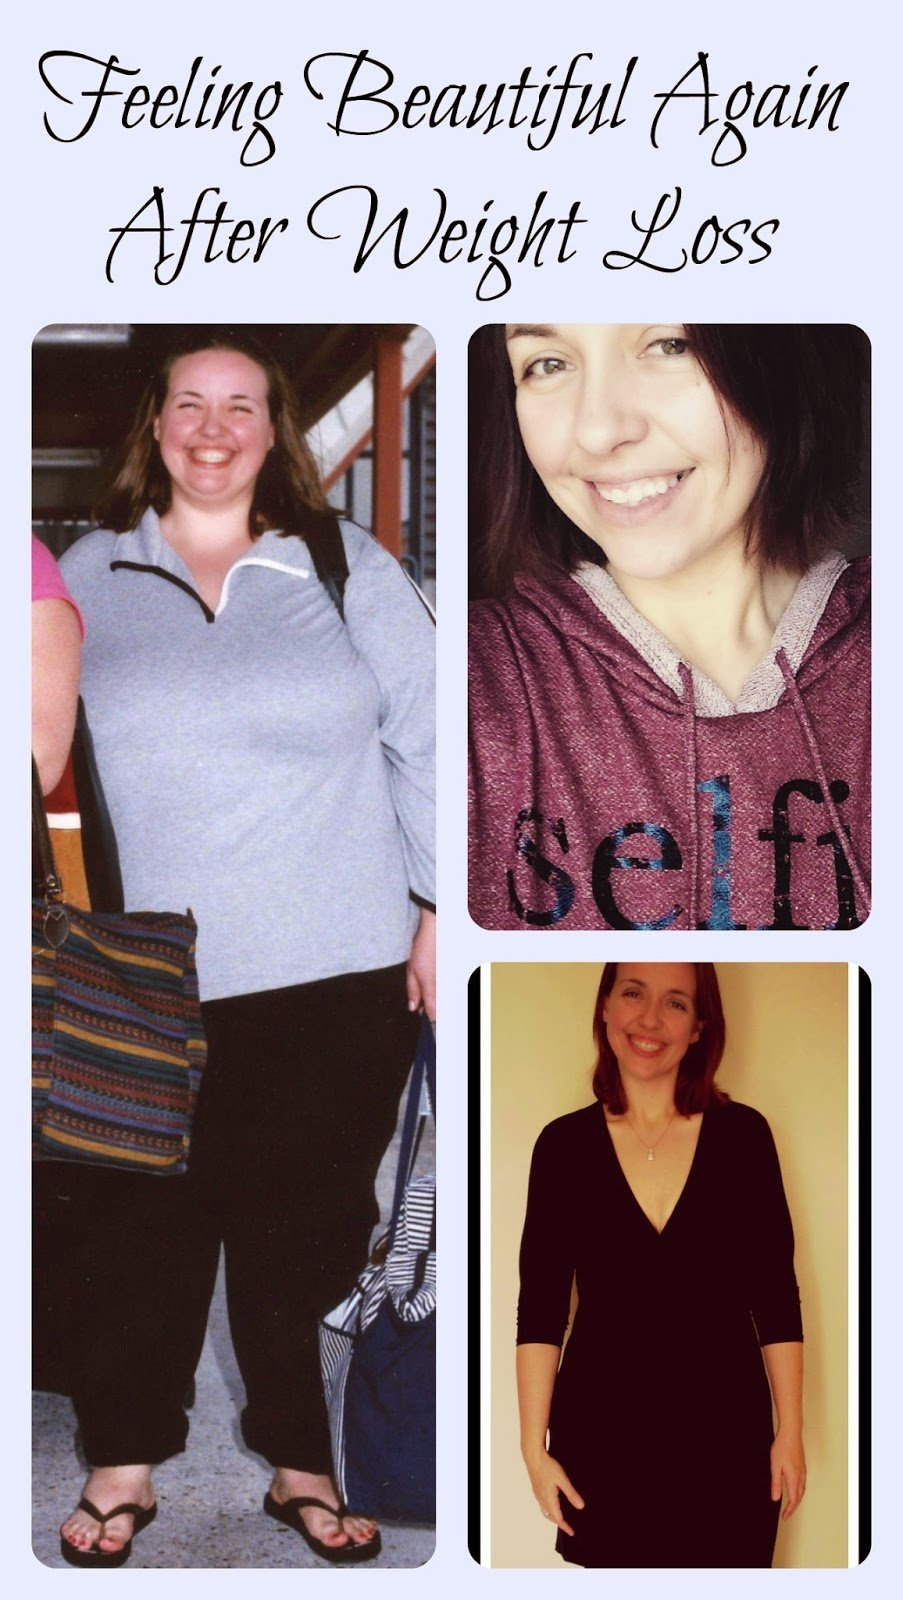 How To Feel Beautiful Again Life After An Extreme Weight Loss